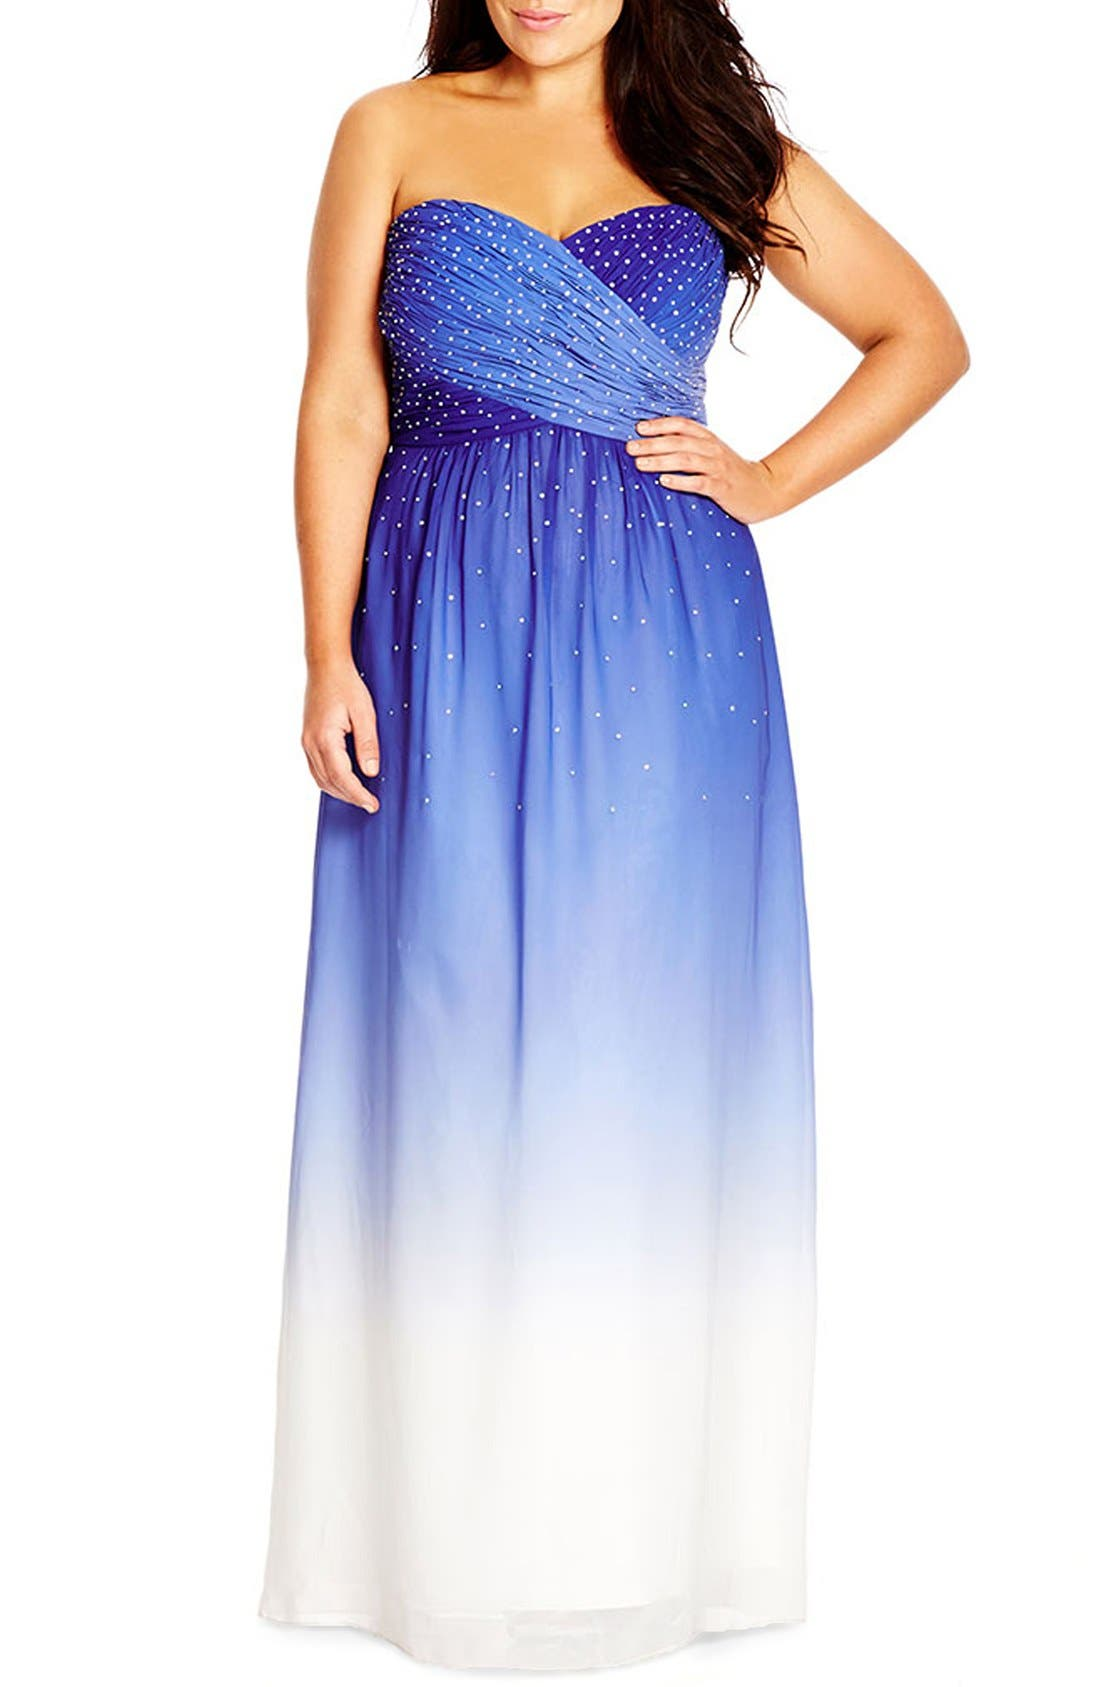 Main Image - City Chic 'Enchanted' Embellished Strapless Ombré Maxi Dress (Plus Size)